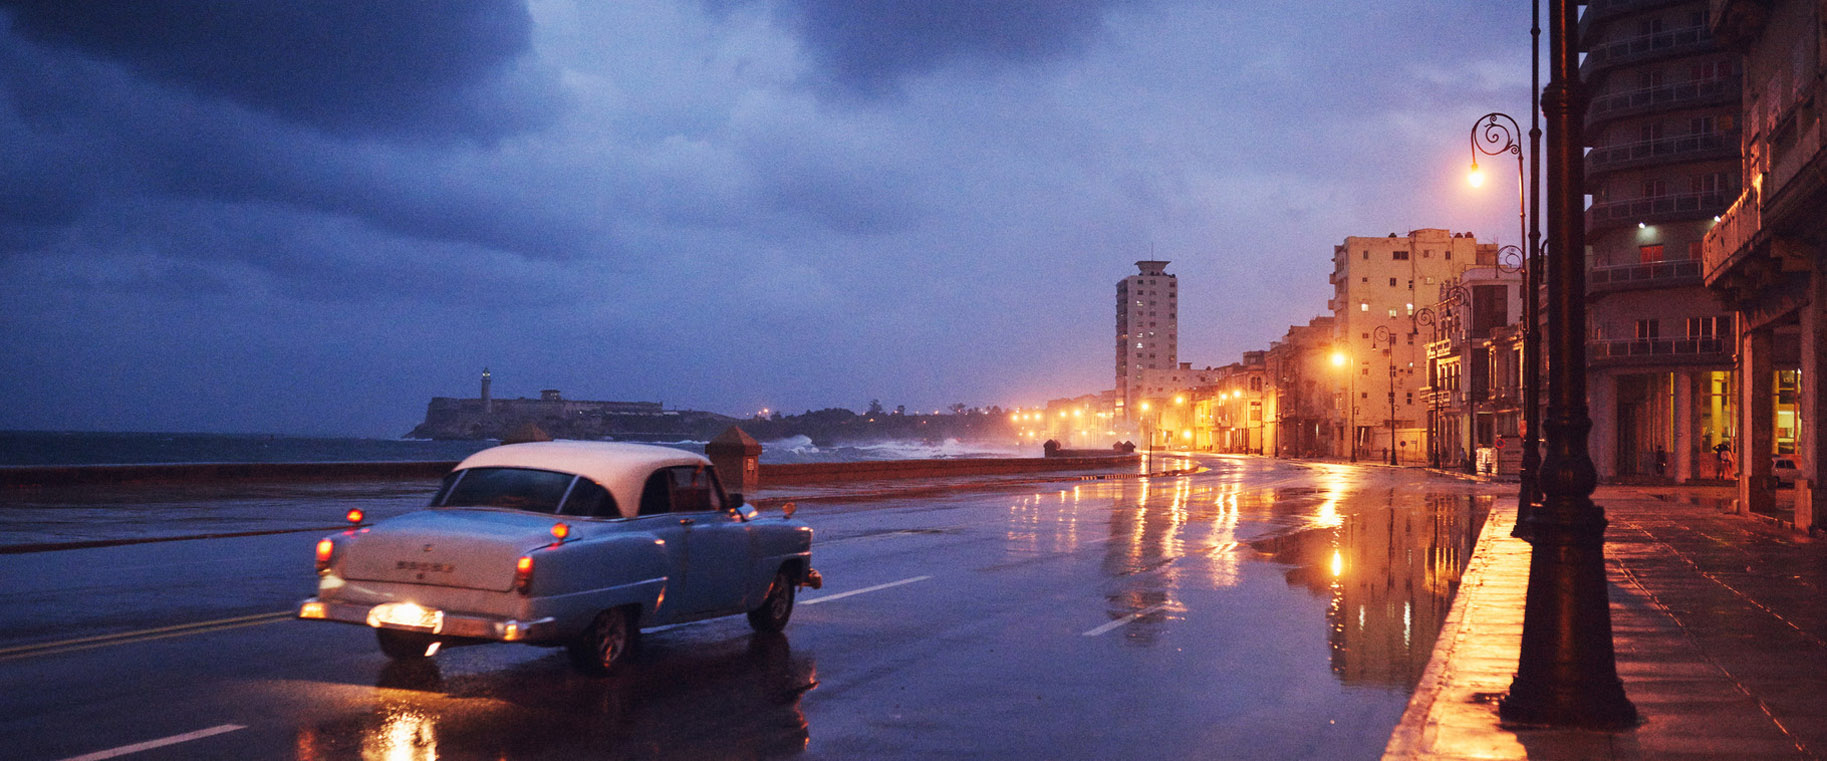 Cuba Cinemascopes by Maximilian Motel